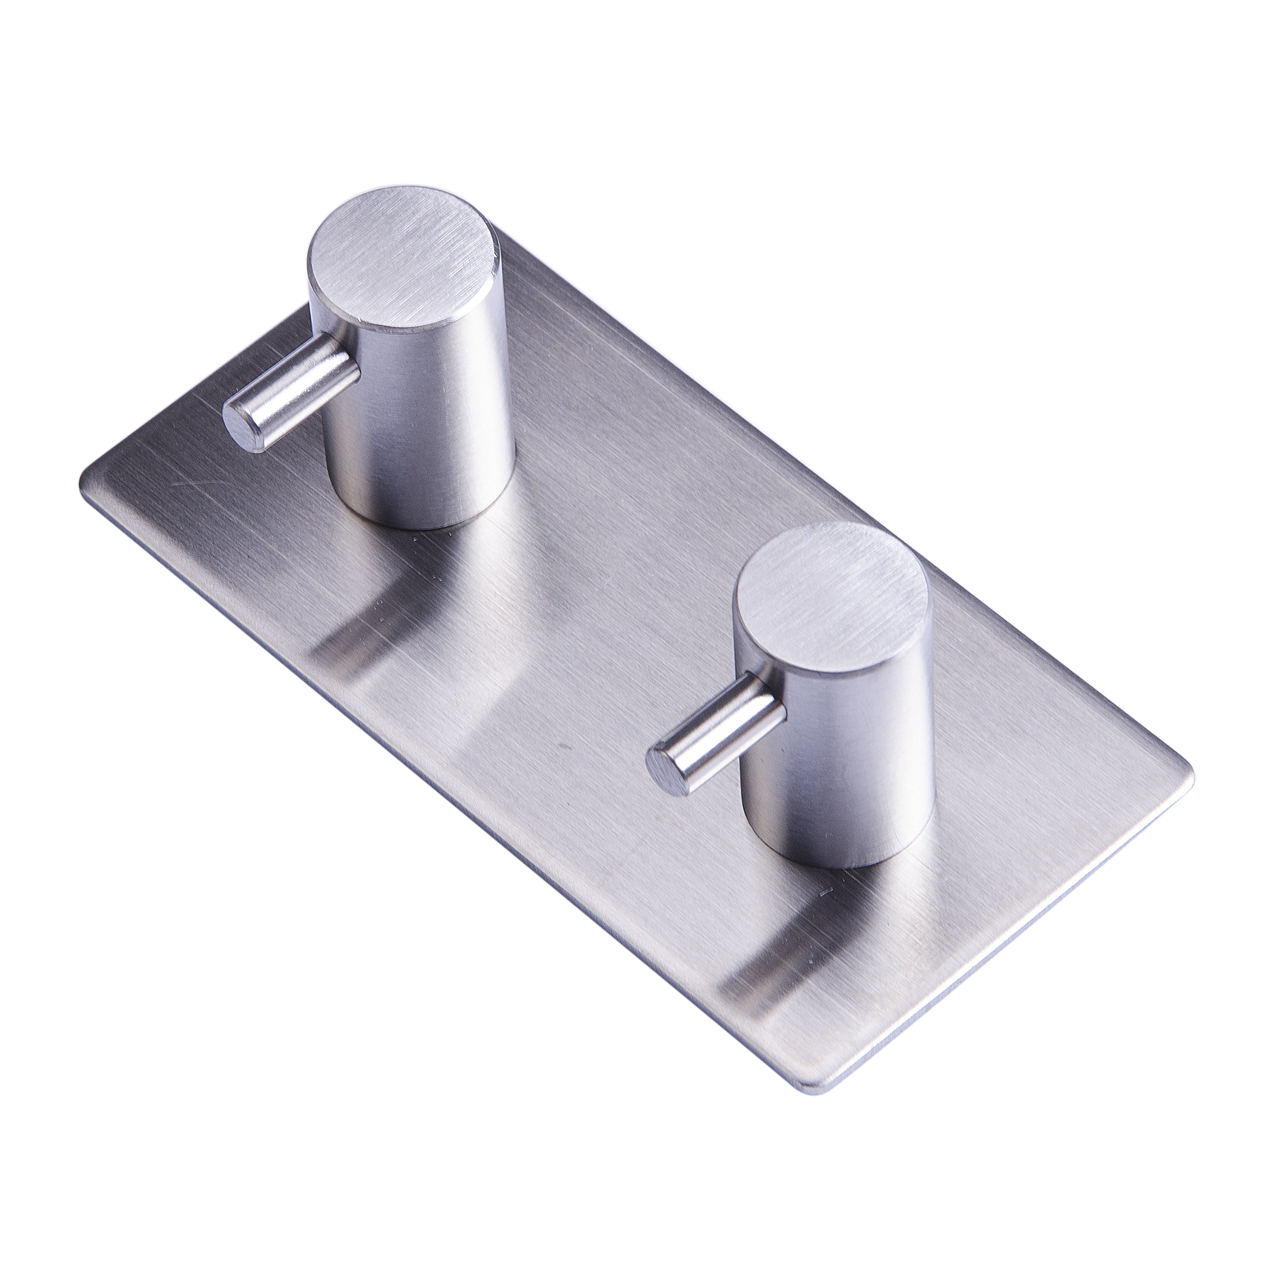 Folding Coat Hook folding coat hanger wall promotion-shop for promotional folding